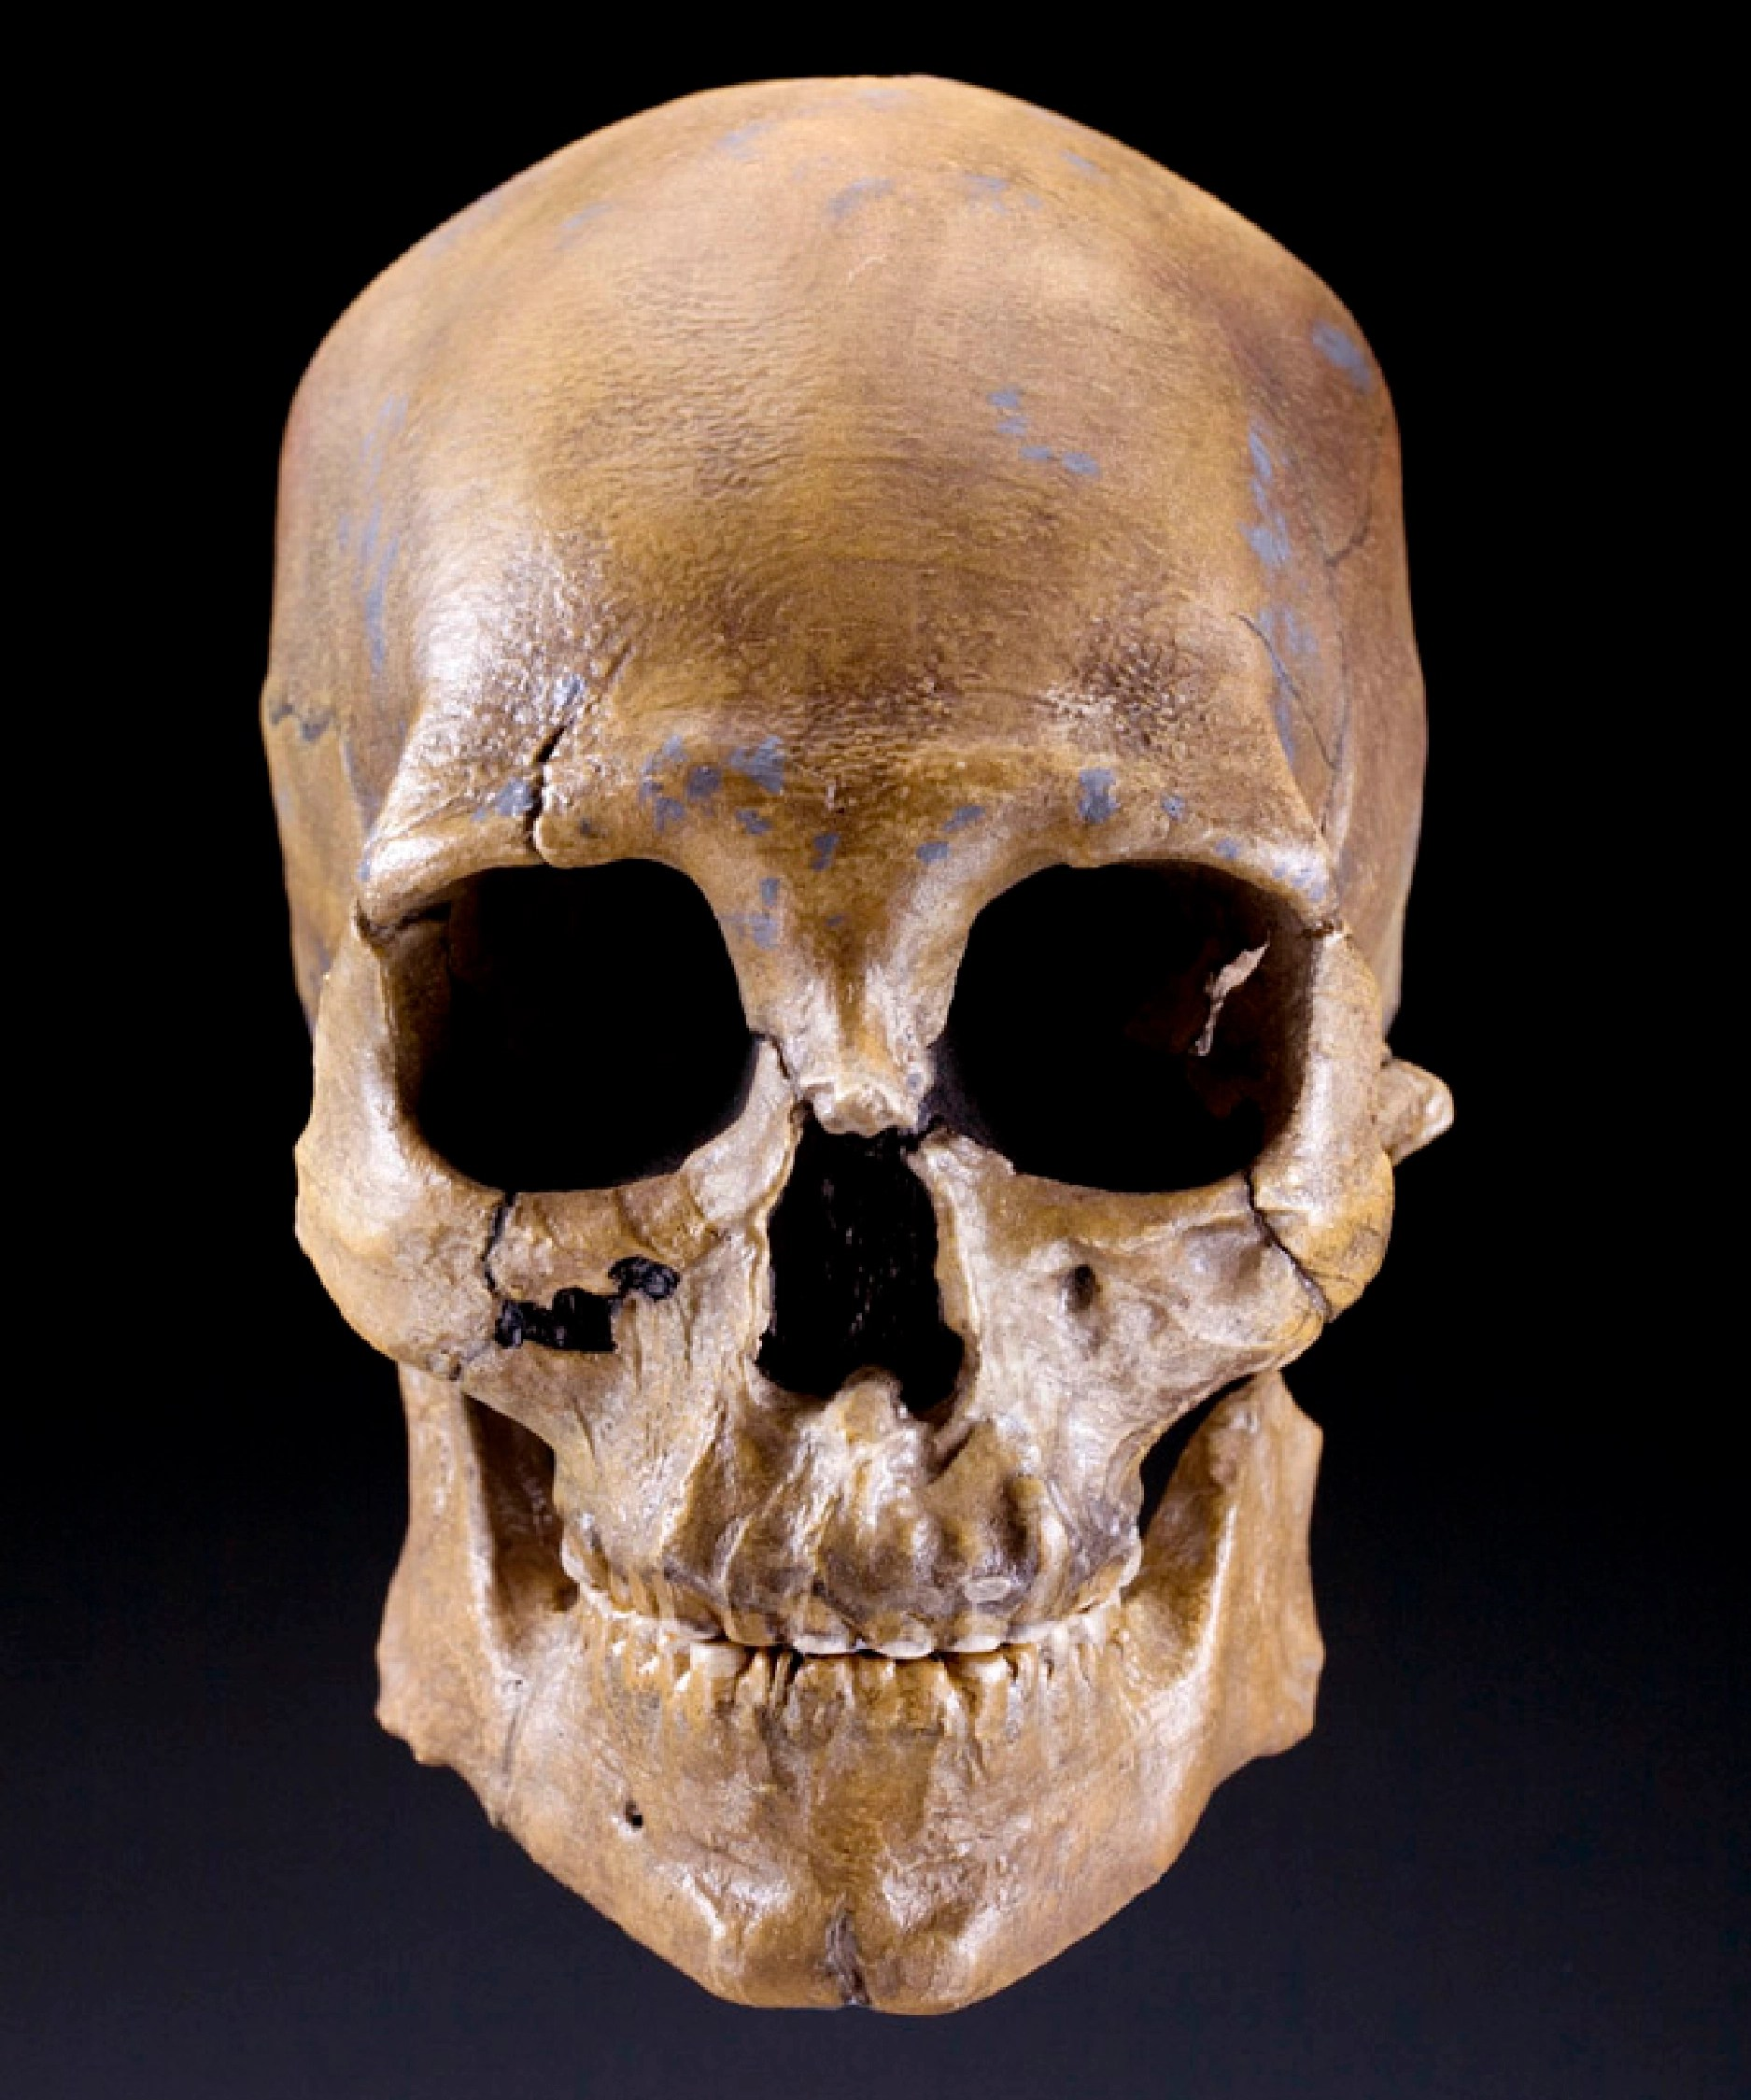 Human Skull Kennewick Man Skeletal Find May Revolutionalize Continent